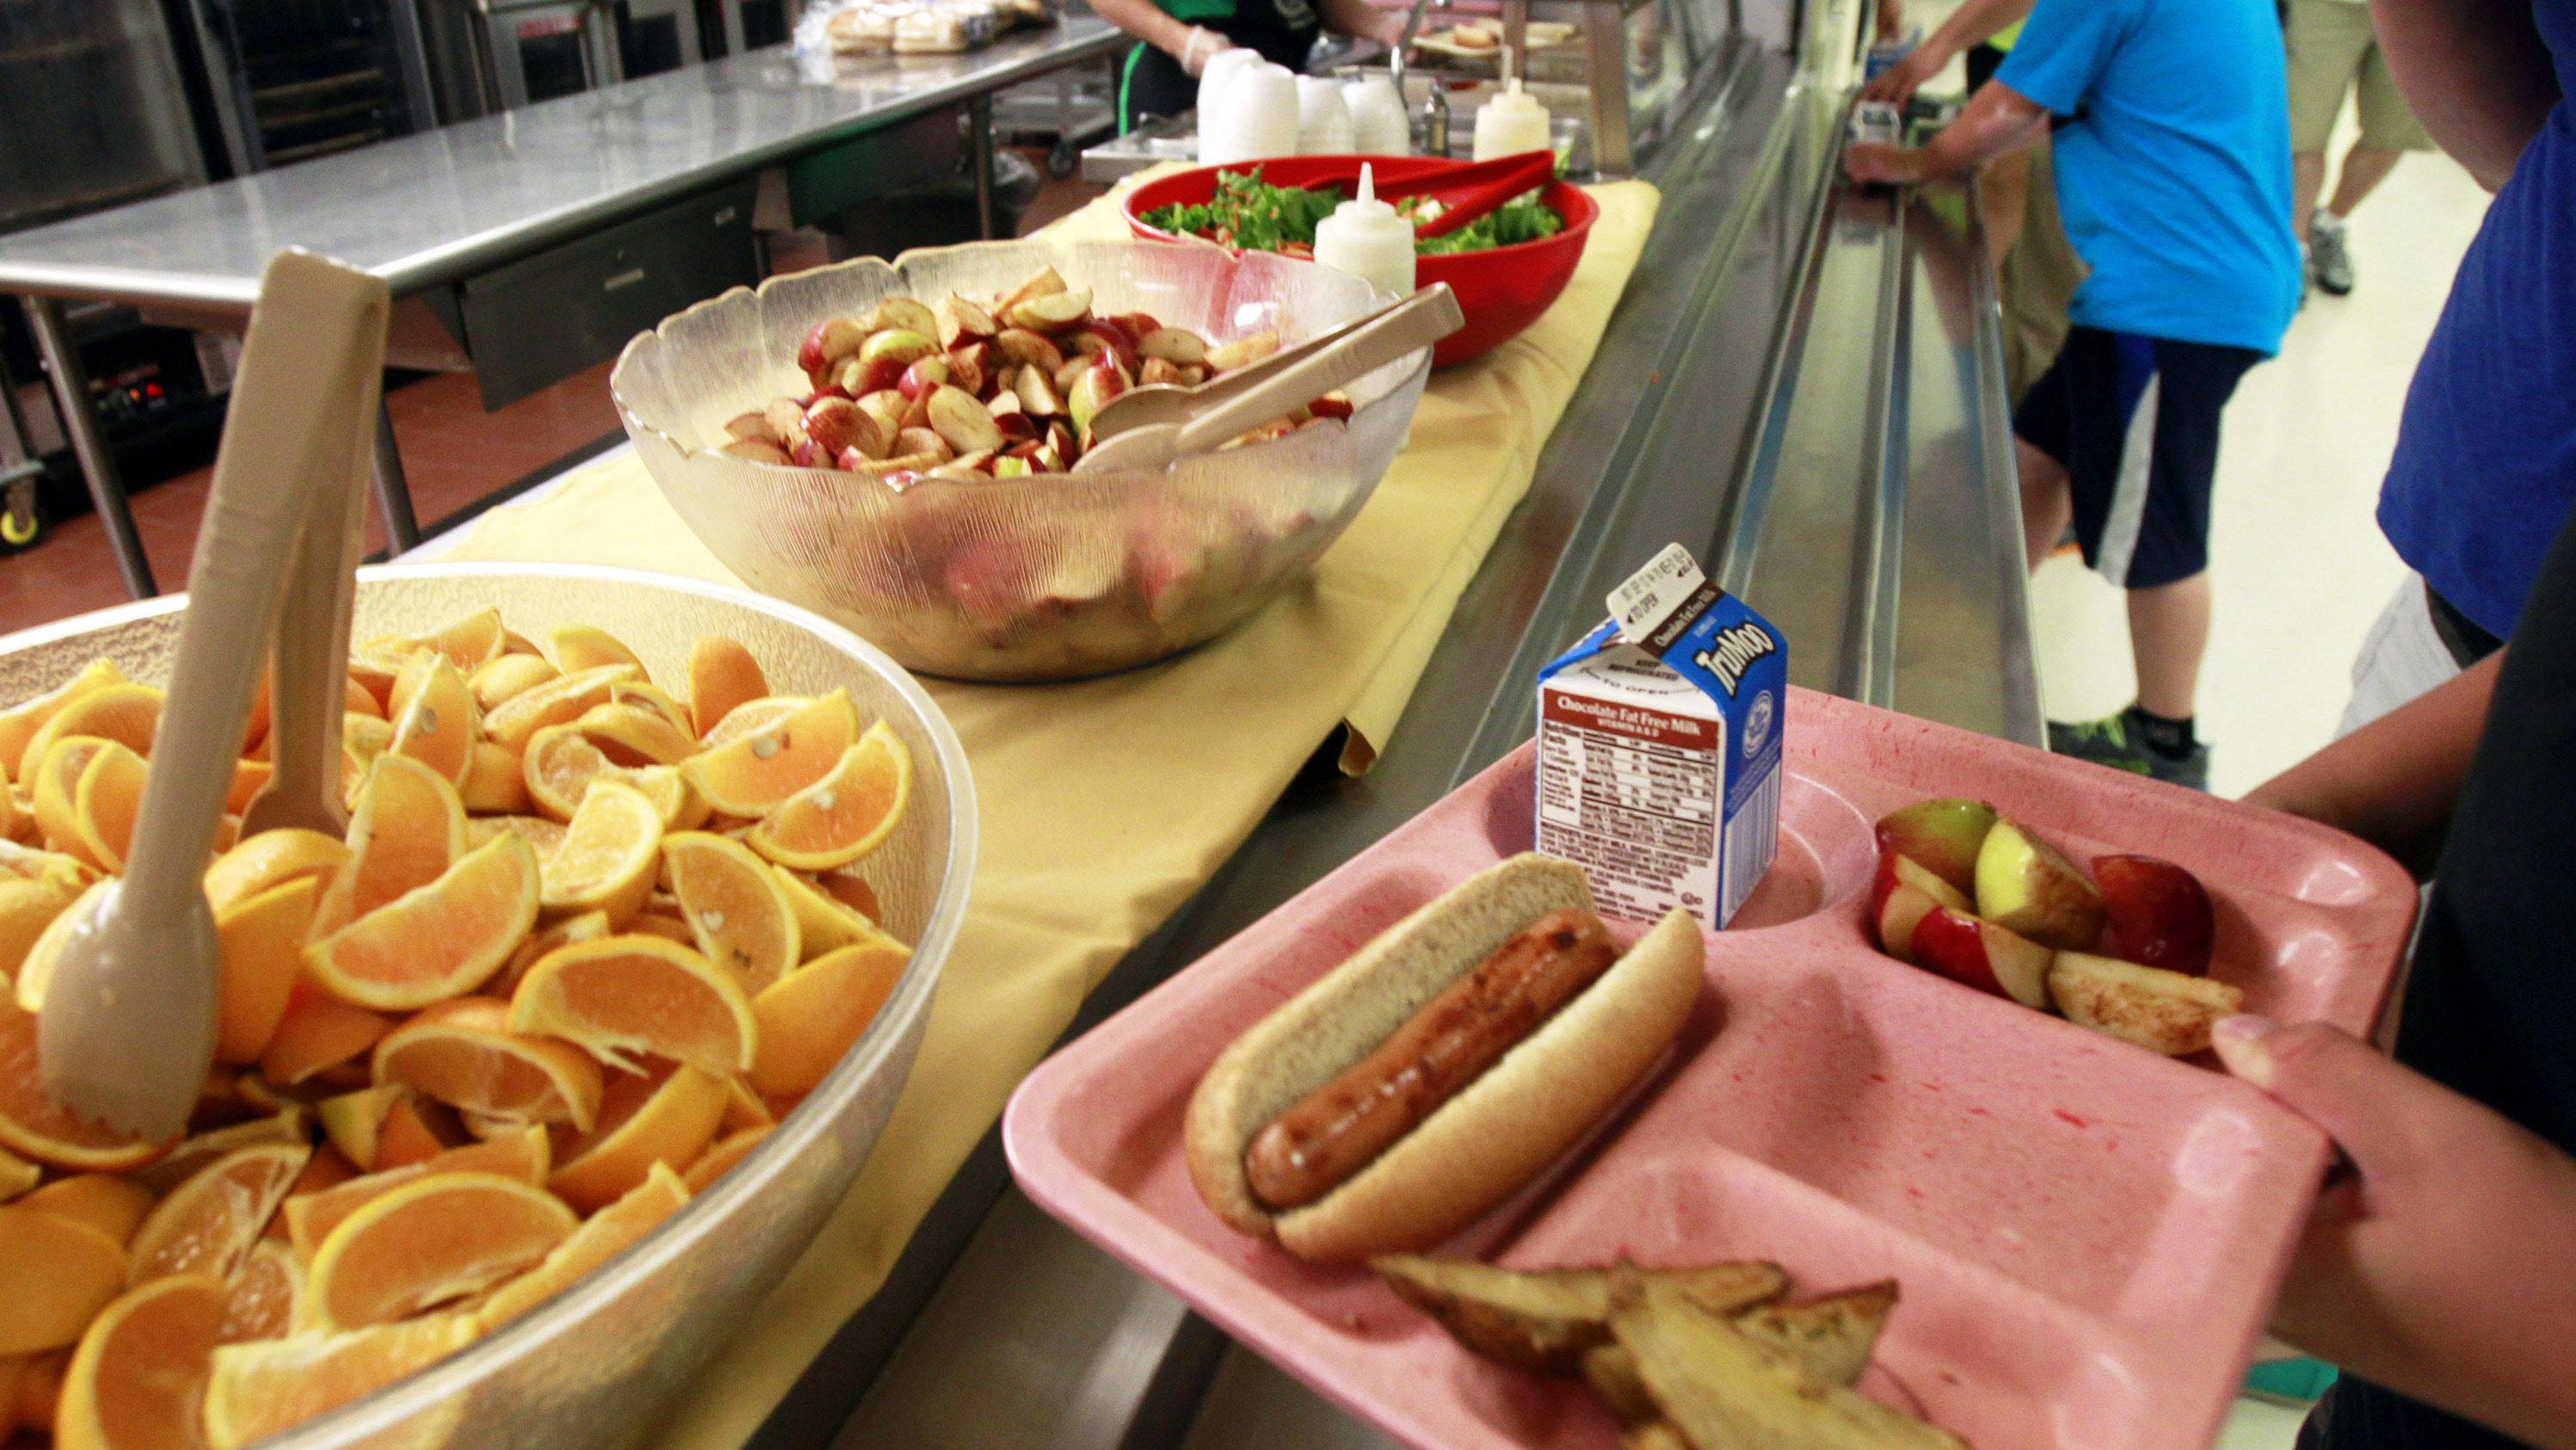 Let Them Eat Sandwiches: USDA Eases School Lunch Restrictions